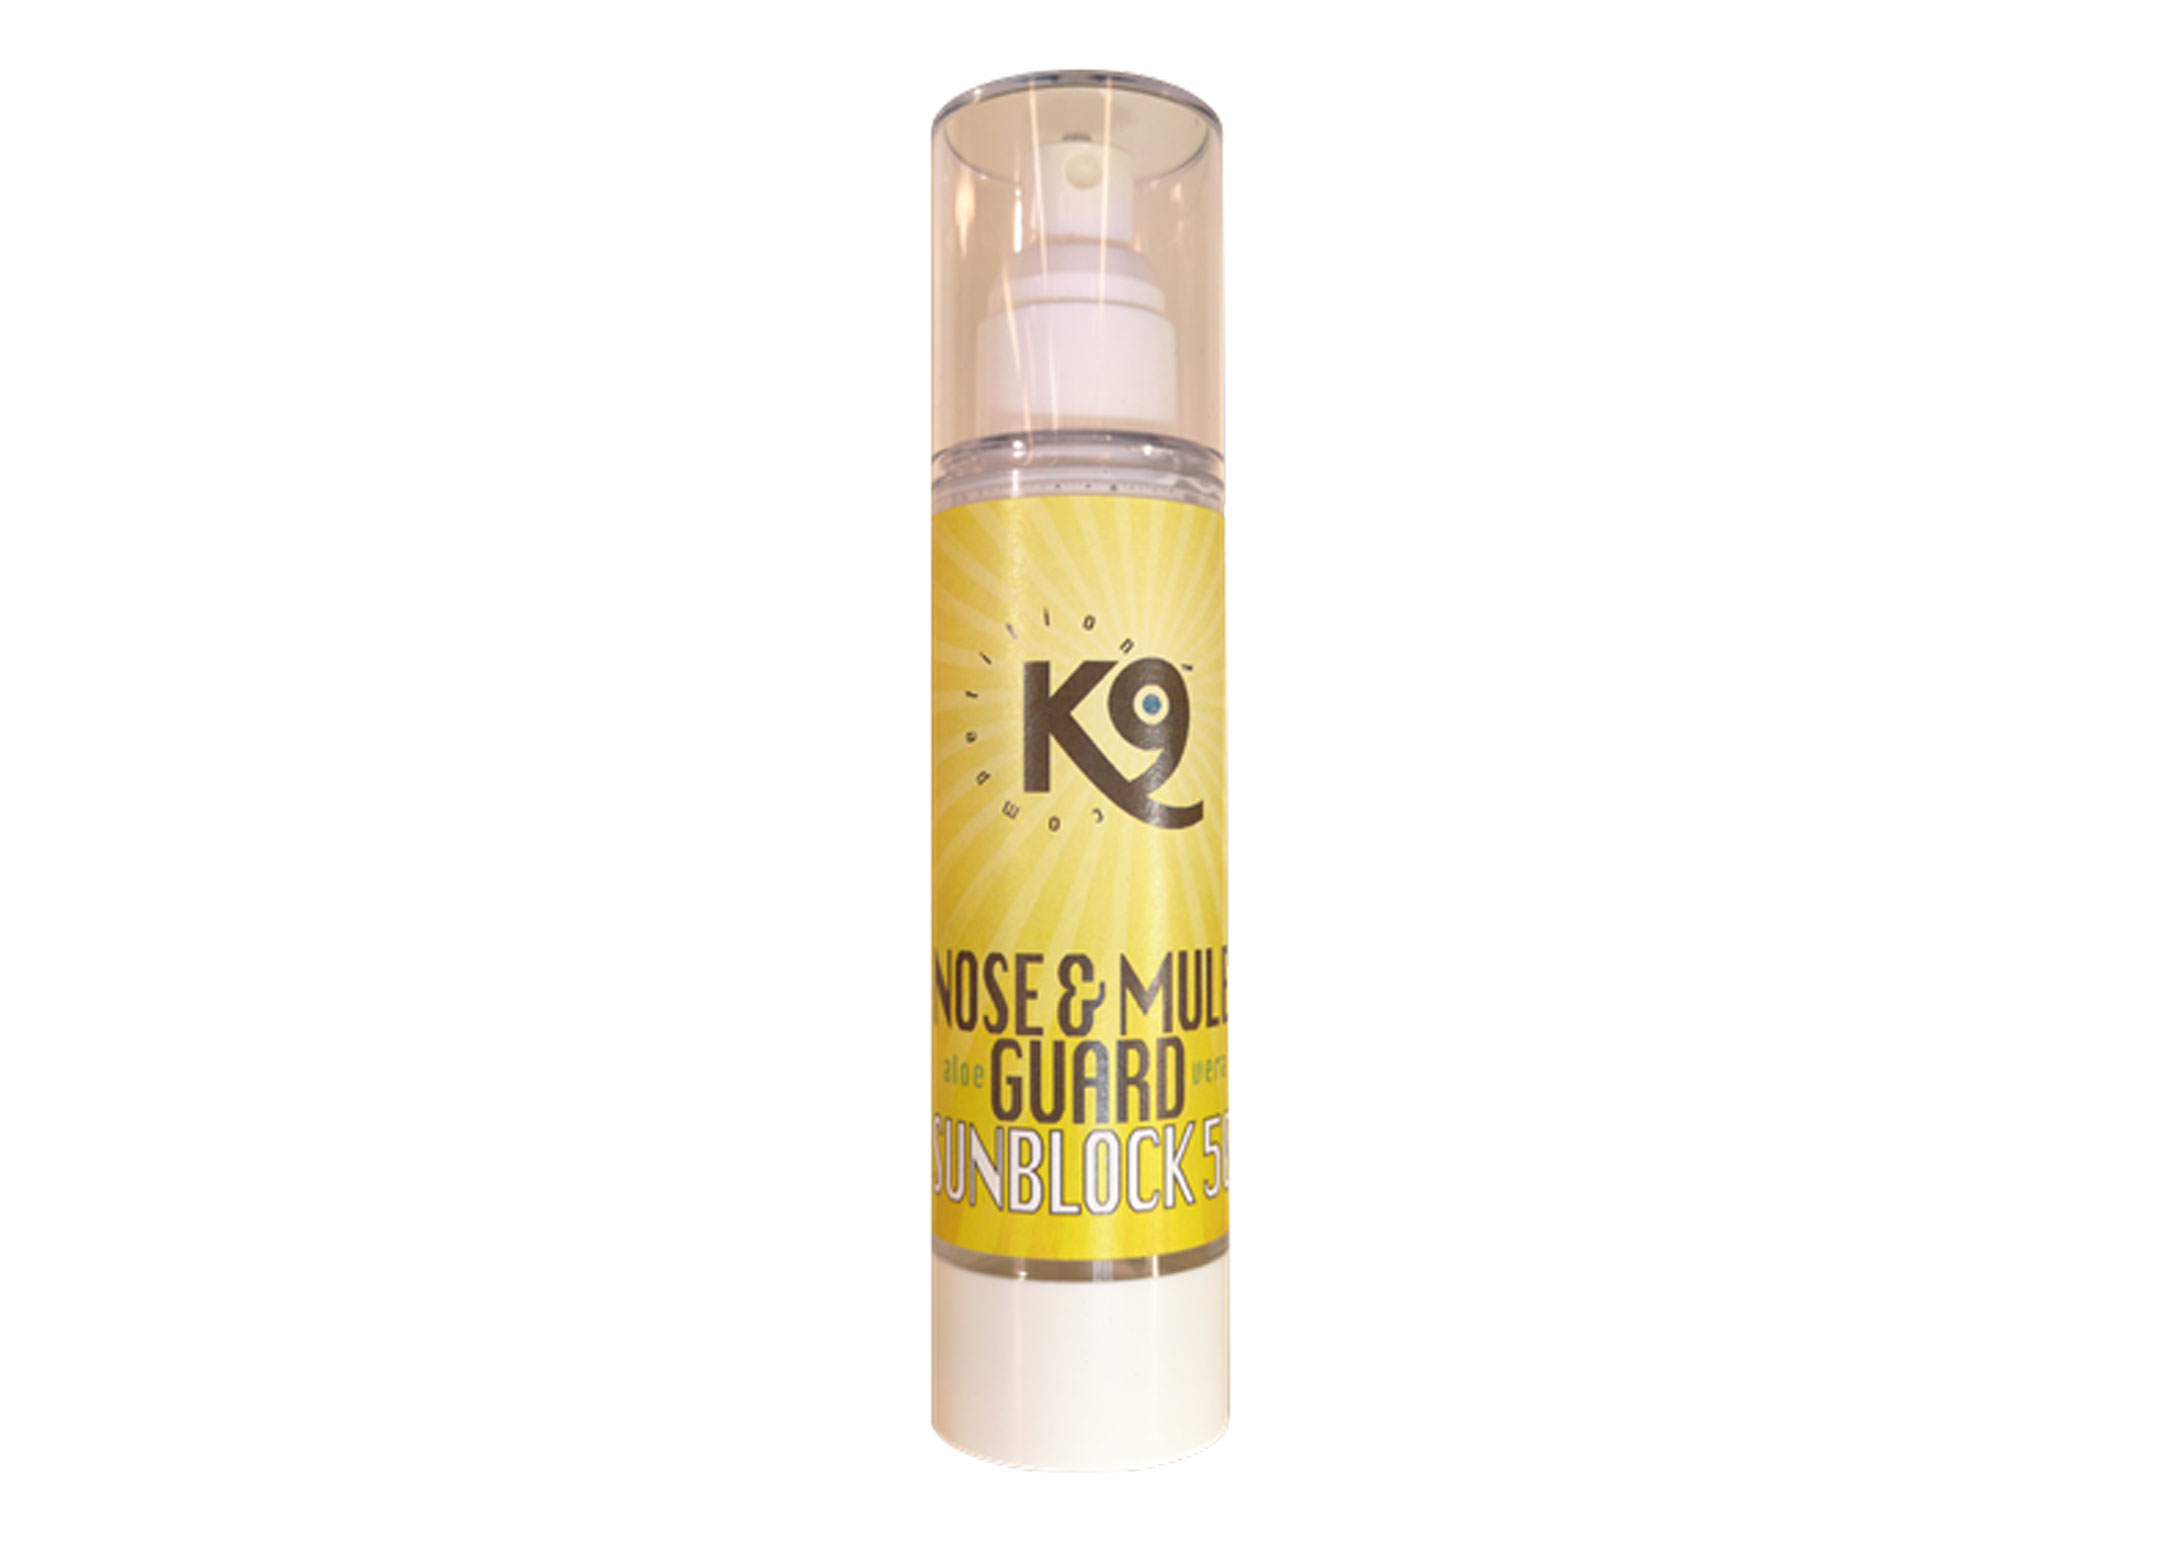 K9 Nose 'n' Mule Guard 100ml Sunblock 50